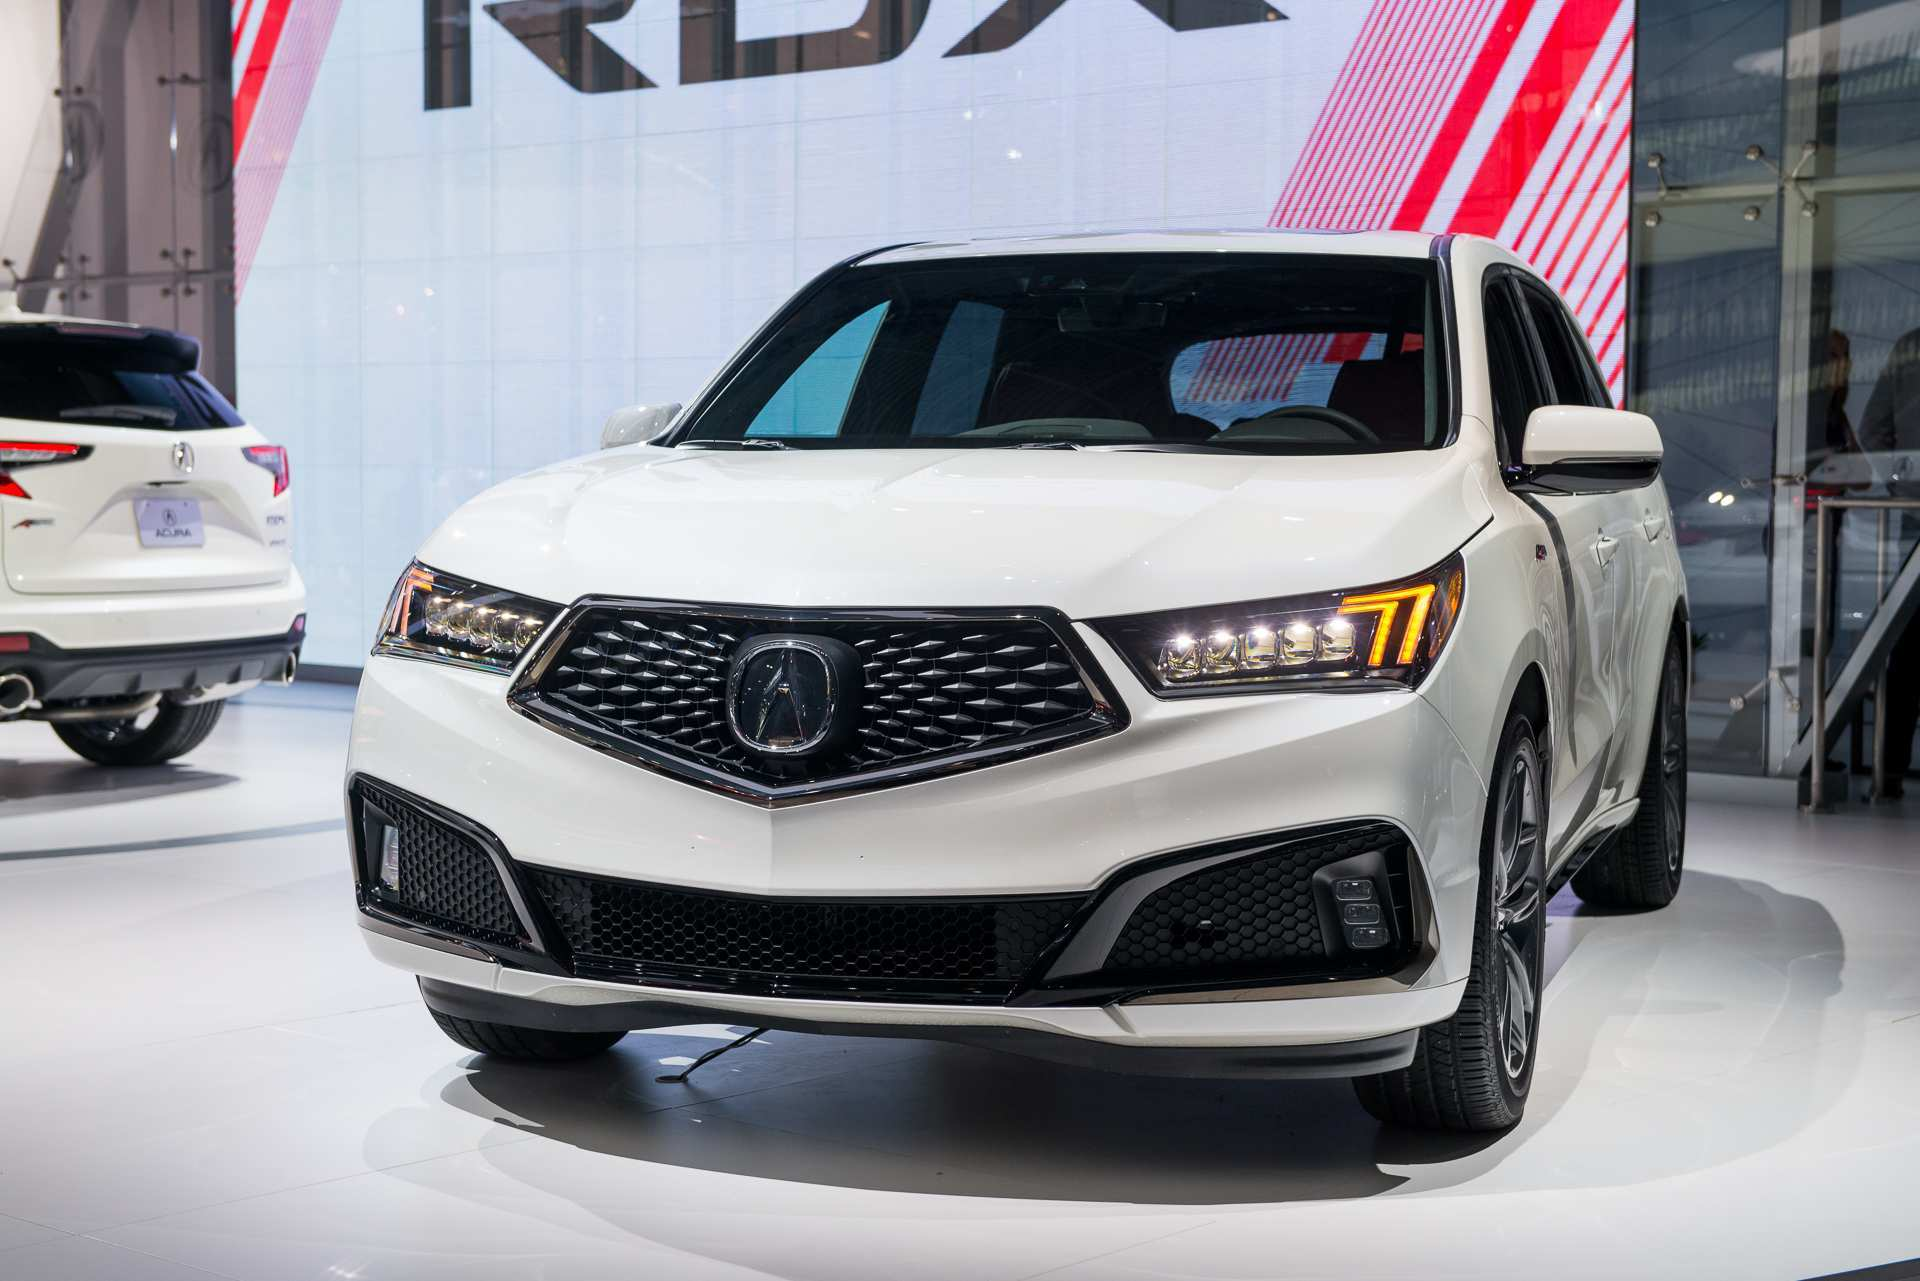 88 The Best 2019 Acura Mdx Release Date Price and Release date